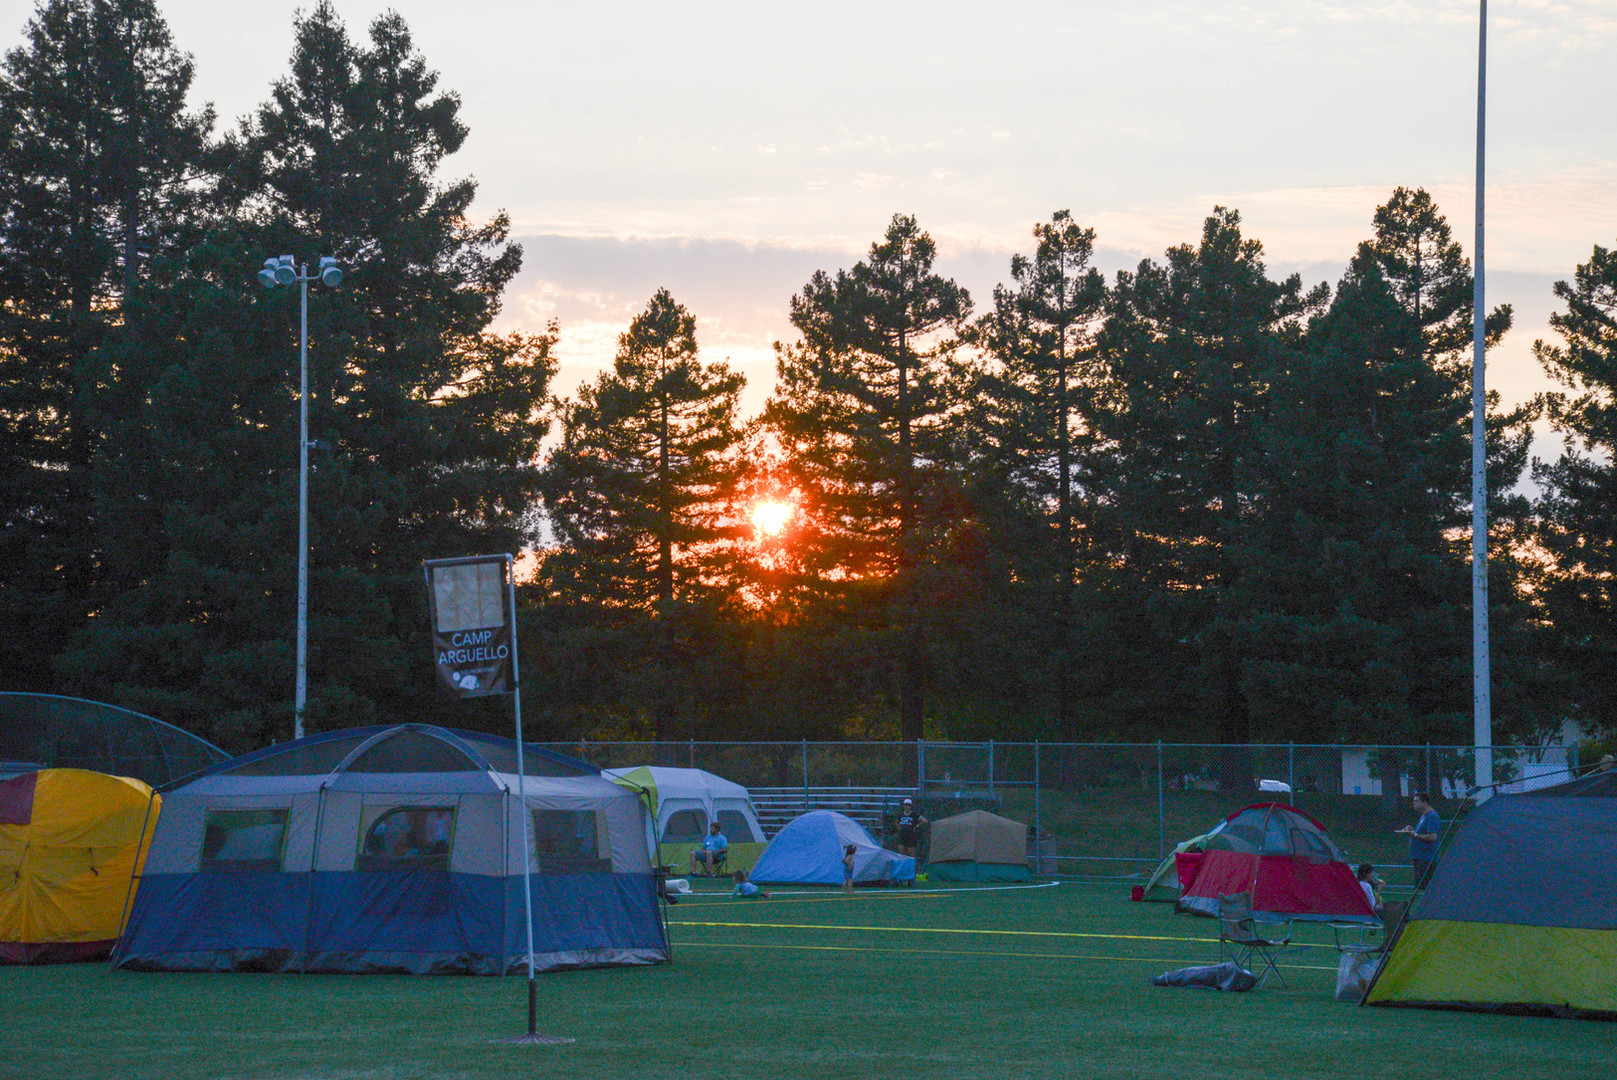 2018 Family Campout (flagged) - 05 - DSC